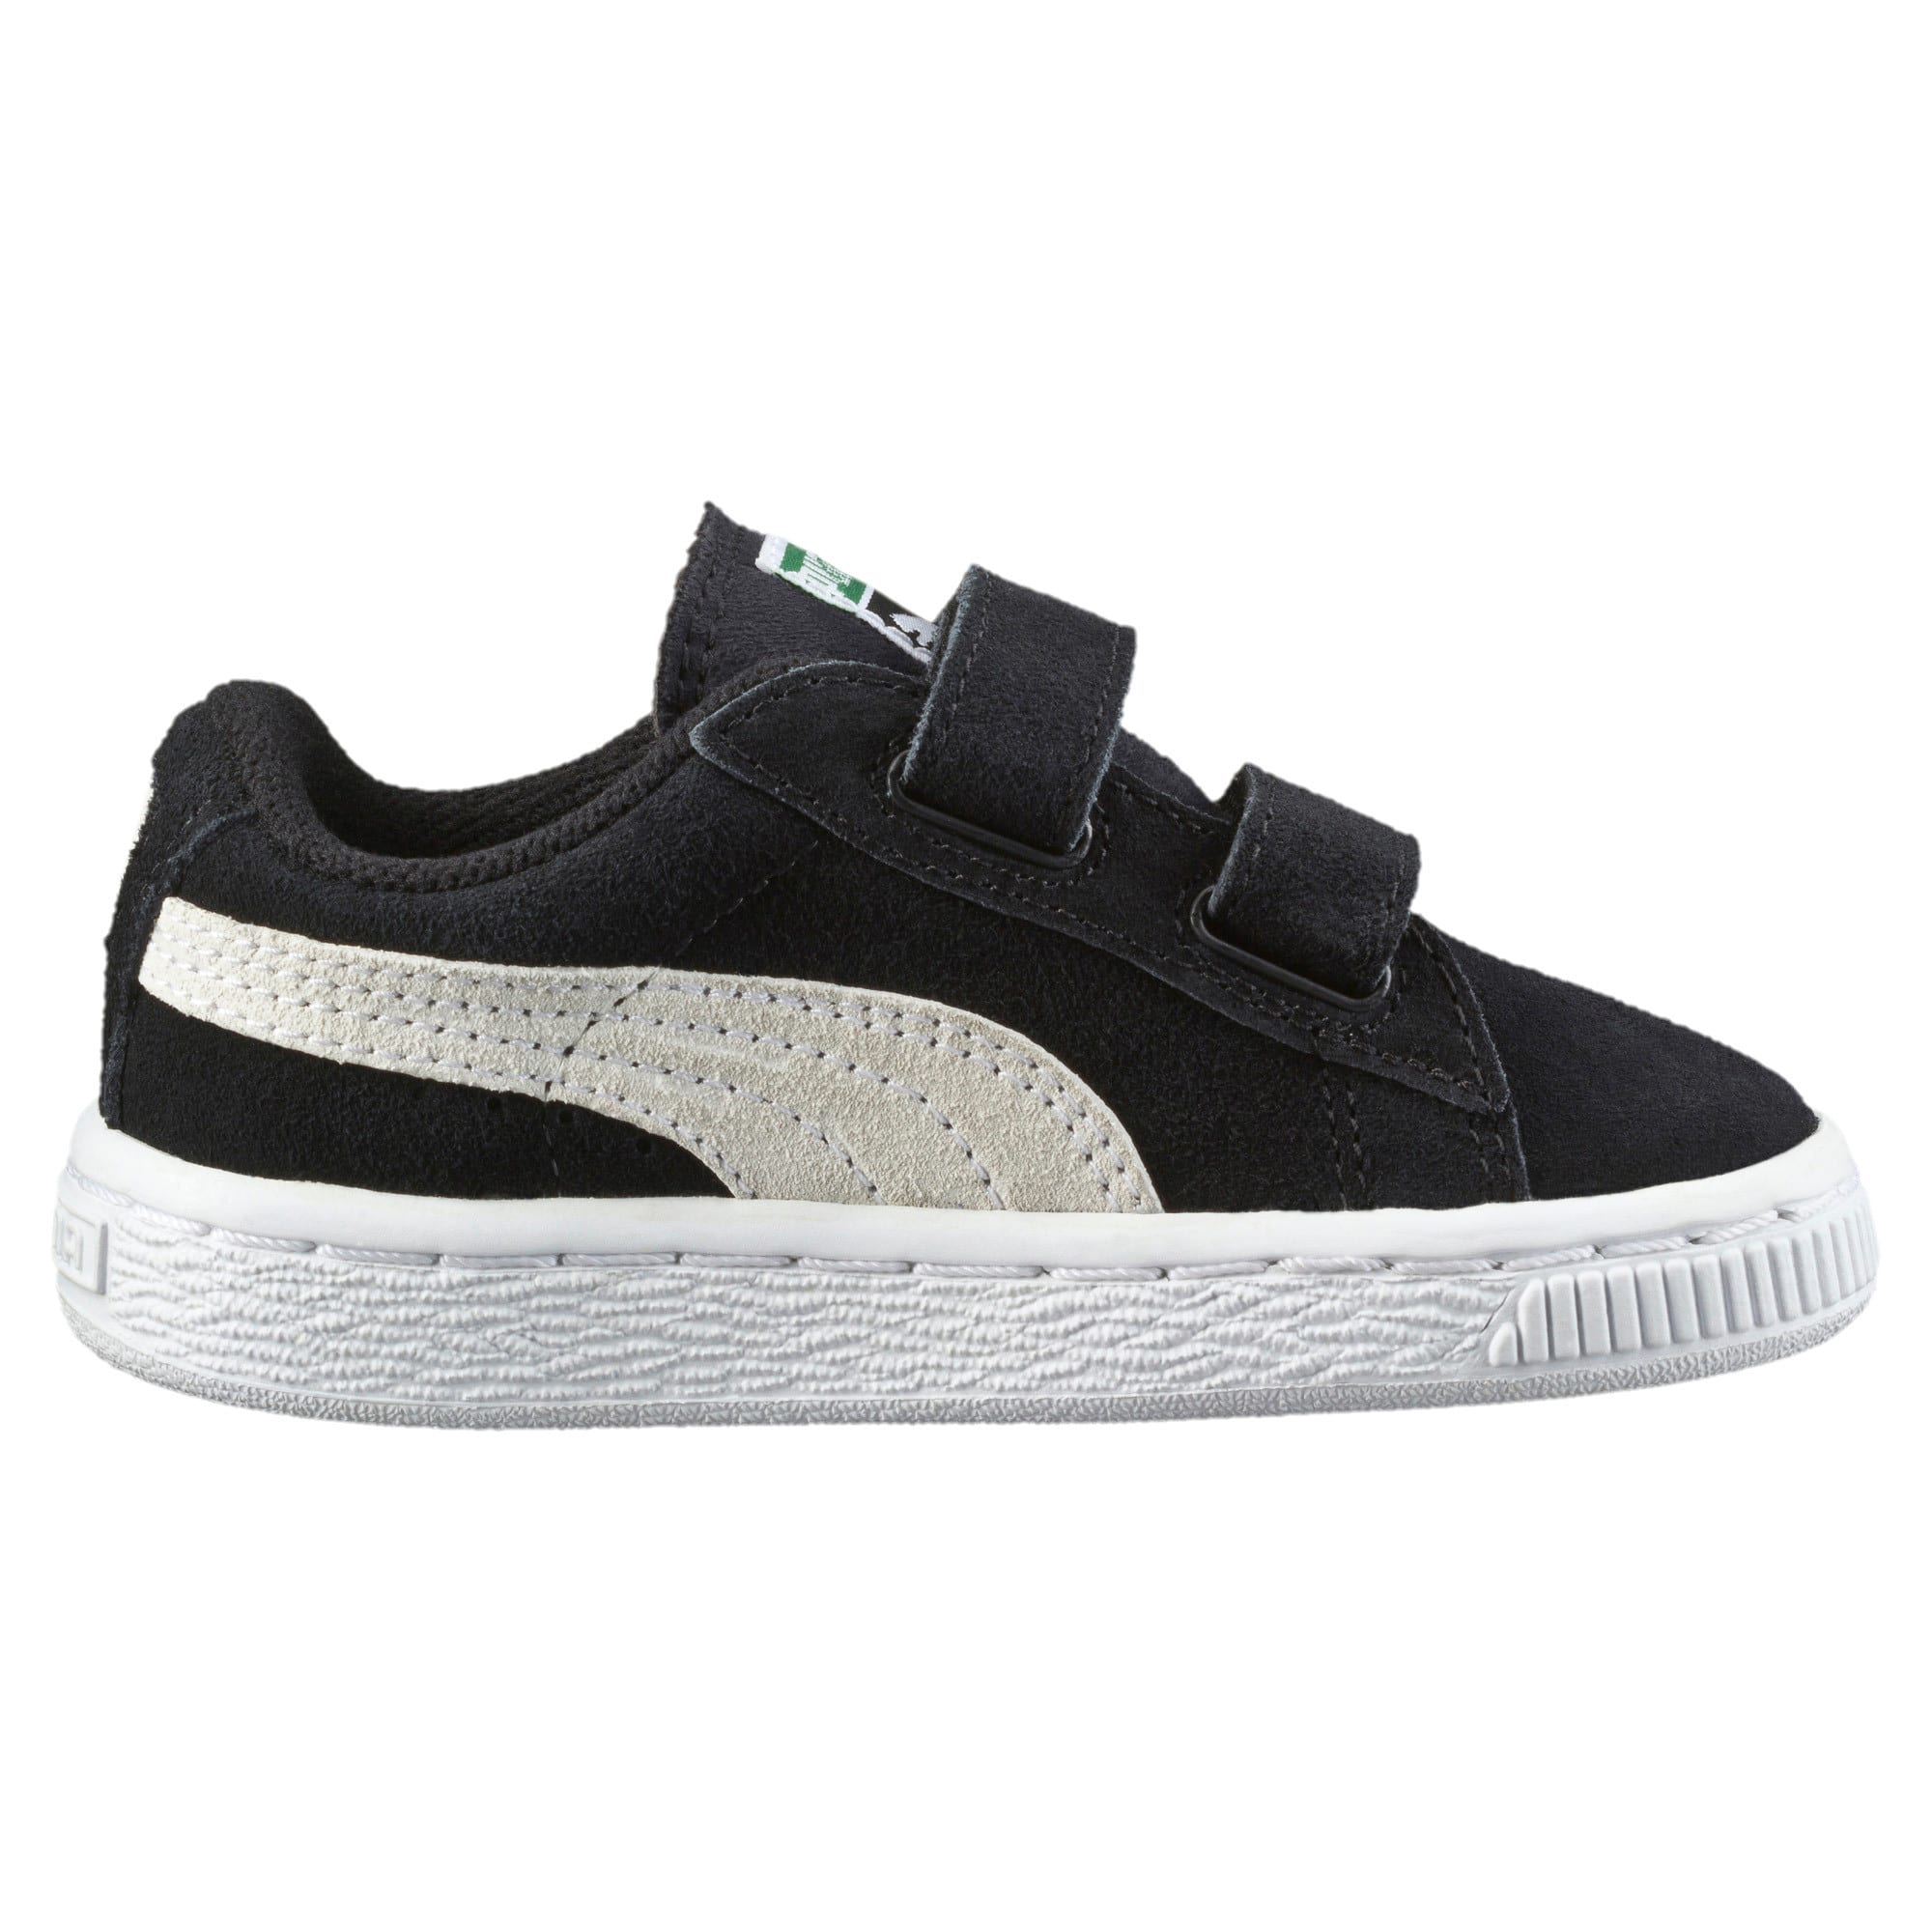 Thumbnail 4 of Suede sneakers voor kinderen, Puma Black-Puma White, medium